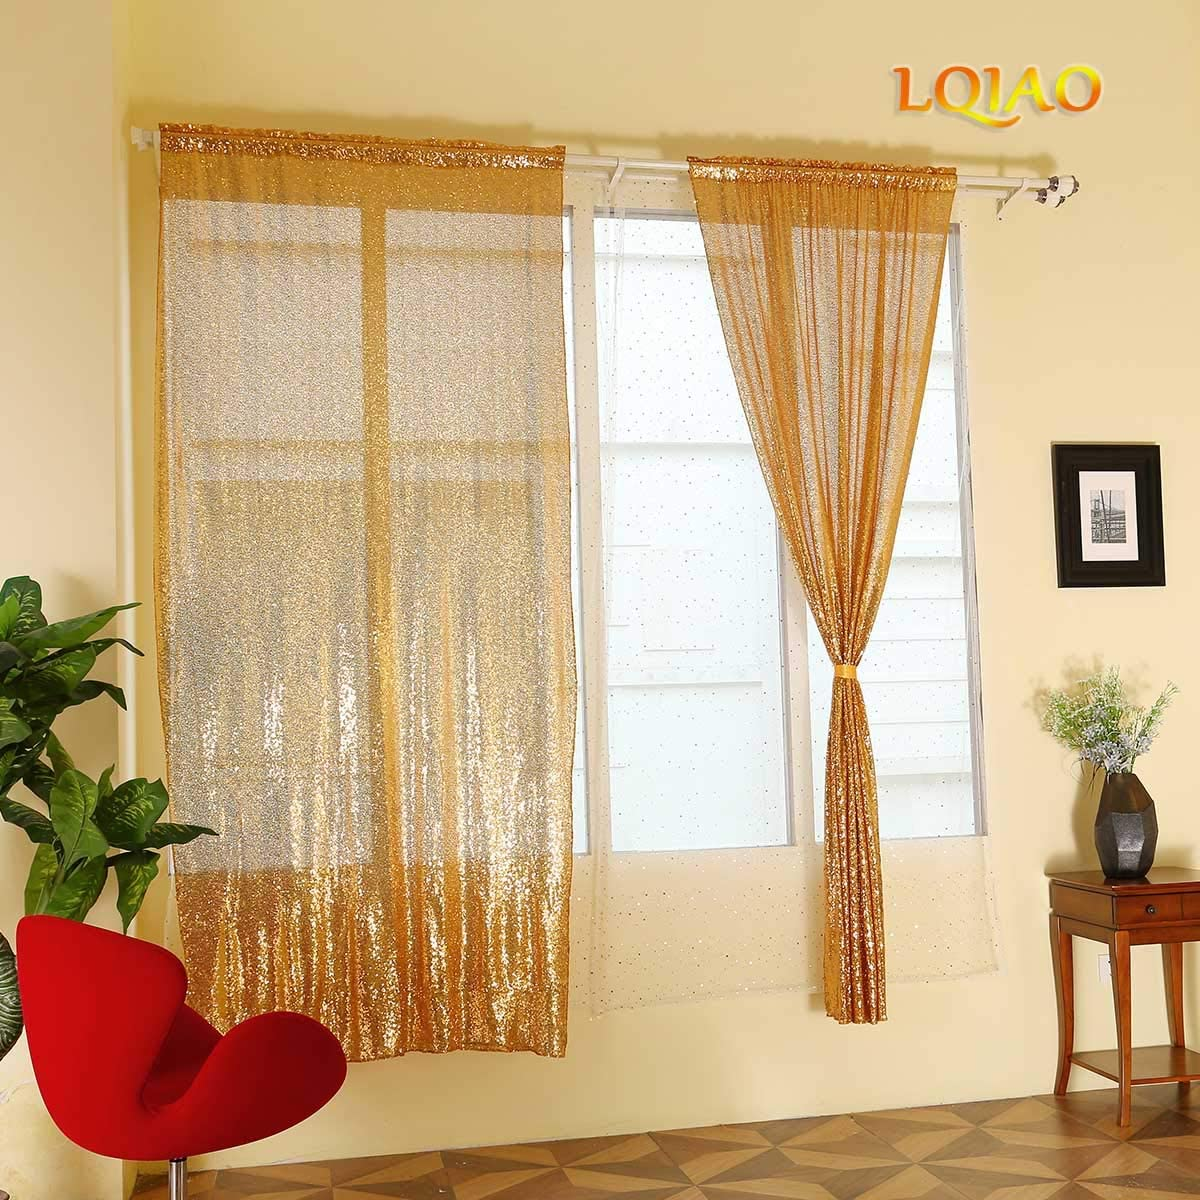 2PCS 4x6FT Gold Sequin Curtain Shimmer Sequin Fabric Photography Backdrop Luxury Curtains for Girl Bedroom Window Wedding Bed Living Room Elegant Drapes